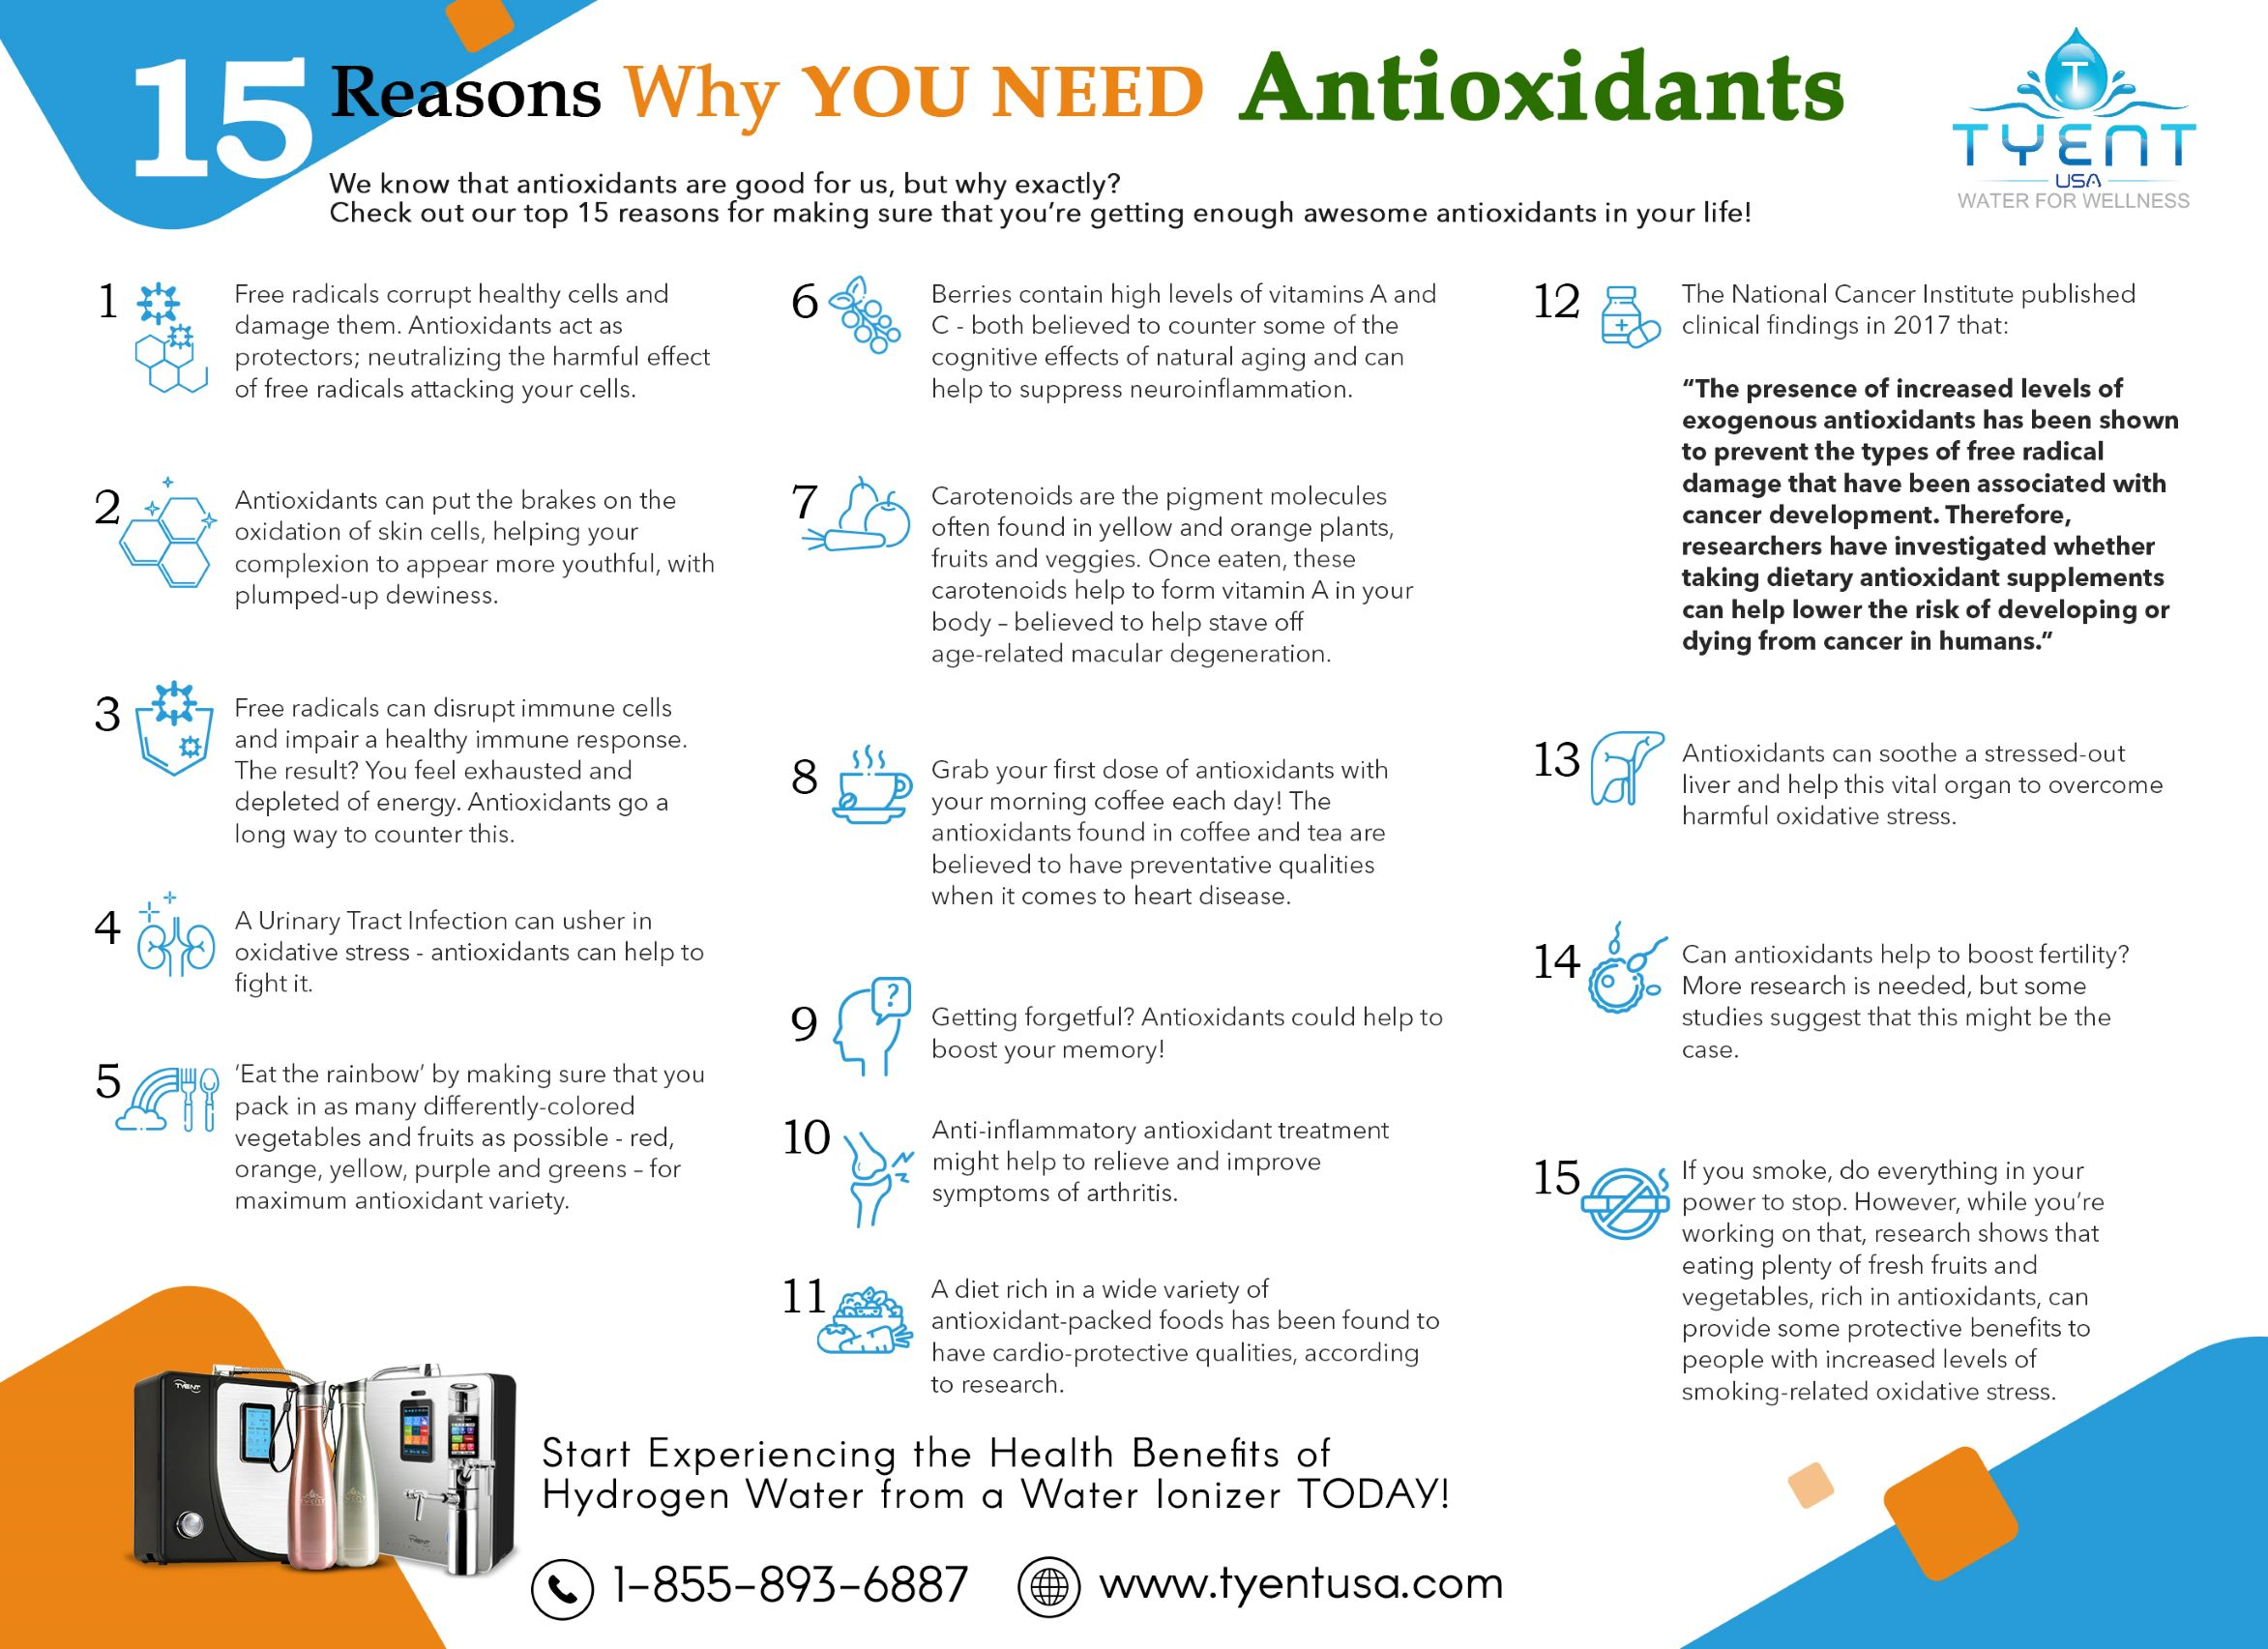 15 Reasons Why You Need Antioxidants